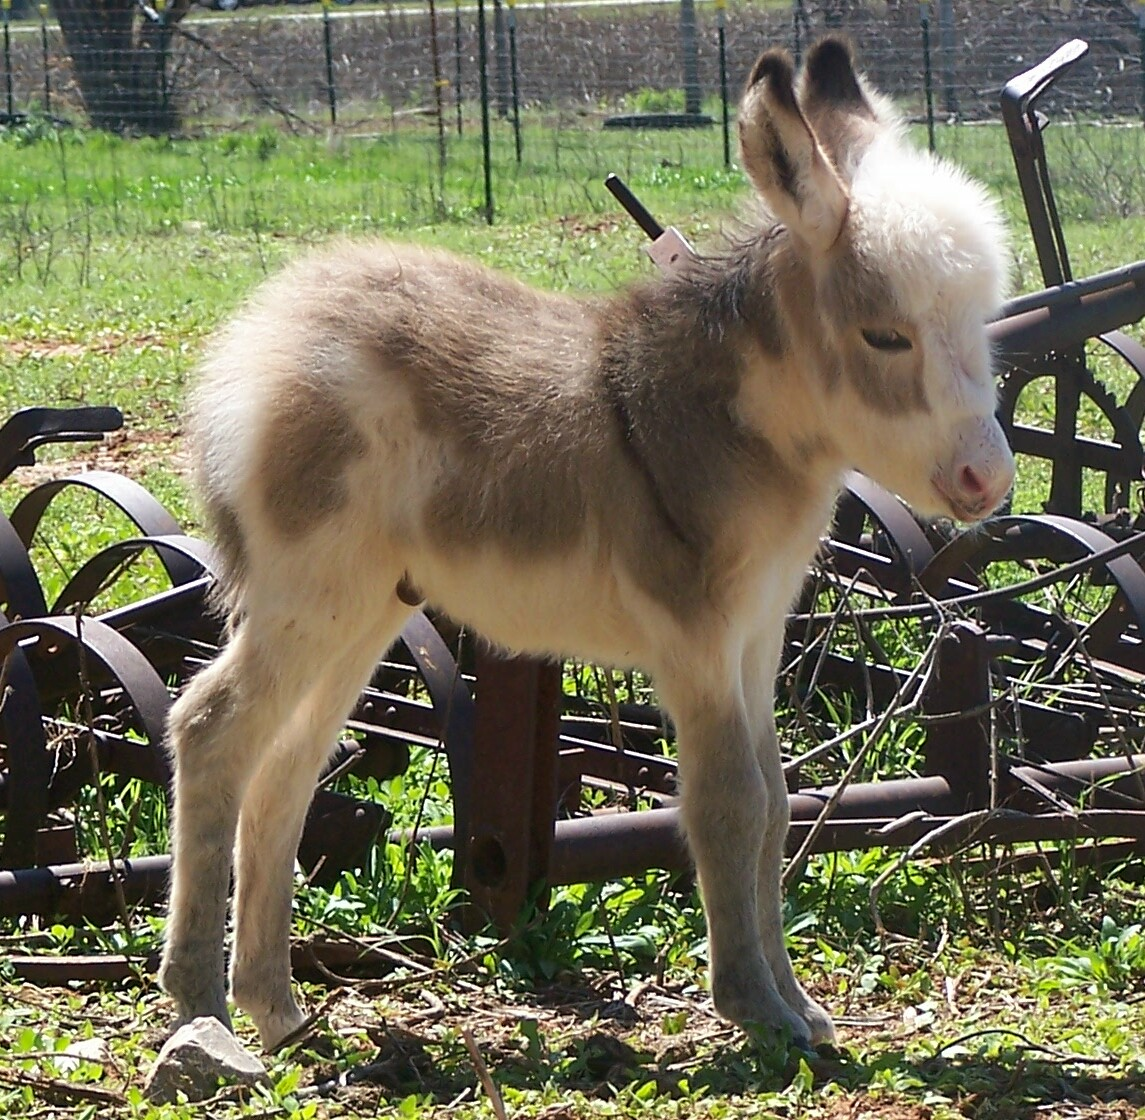 Funny Donkey Pictures All About 24